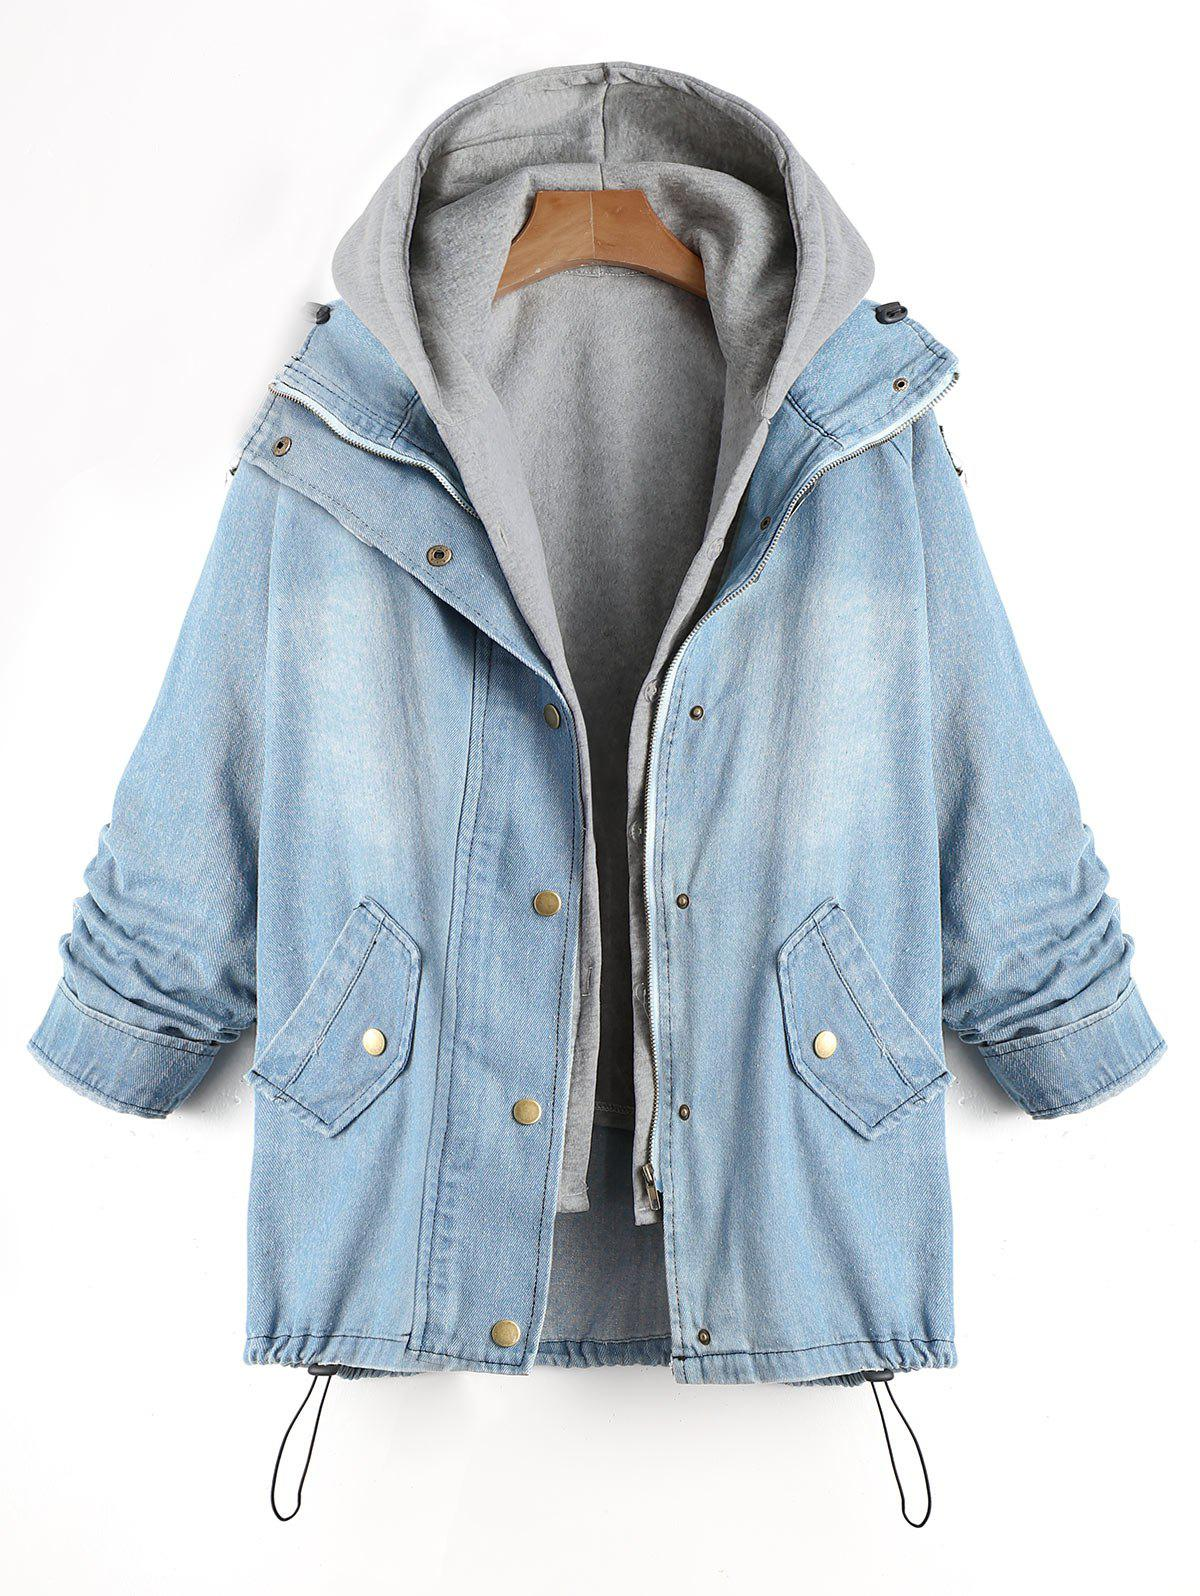 Convertible Two Piece Plus Size Denim CoatWOMEN<br><br>Size: 4XL; Color: DENIM BLUE; Clothes Type: Others; Material: Polyester,Spandex; Type: Slim; Shirt Length: Regular; Sleeve Length: Full; Collar: Hooded; Pattern Type: Solid; Style: Fashion; Season: Fall,Winter; Weight: 0.7700kg; Package Contents: 1 x Coat  1 x Tank;